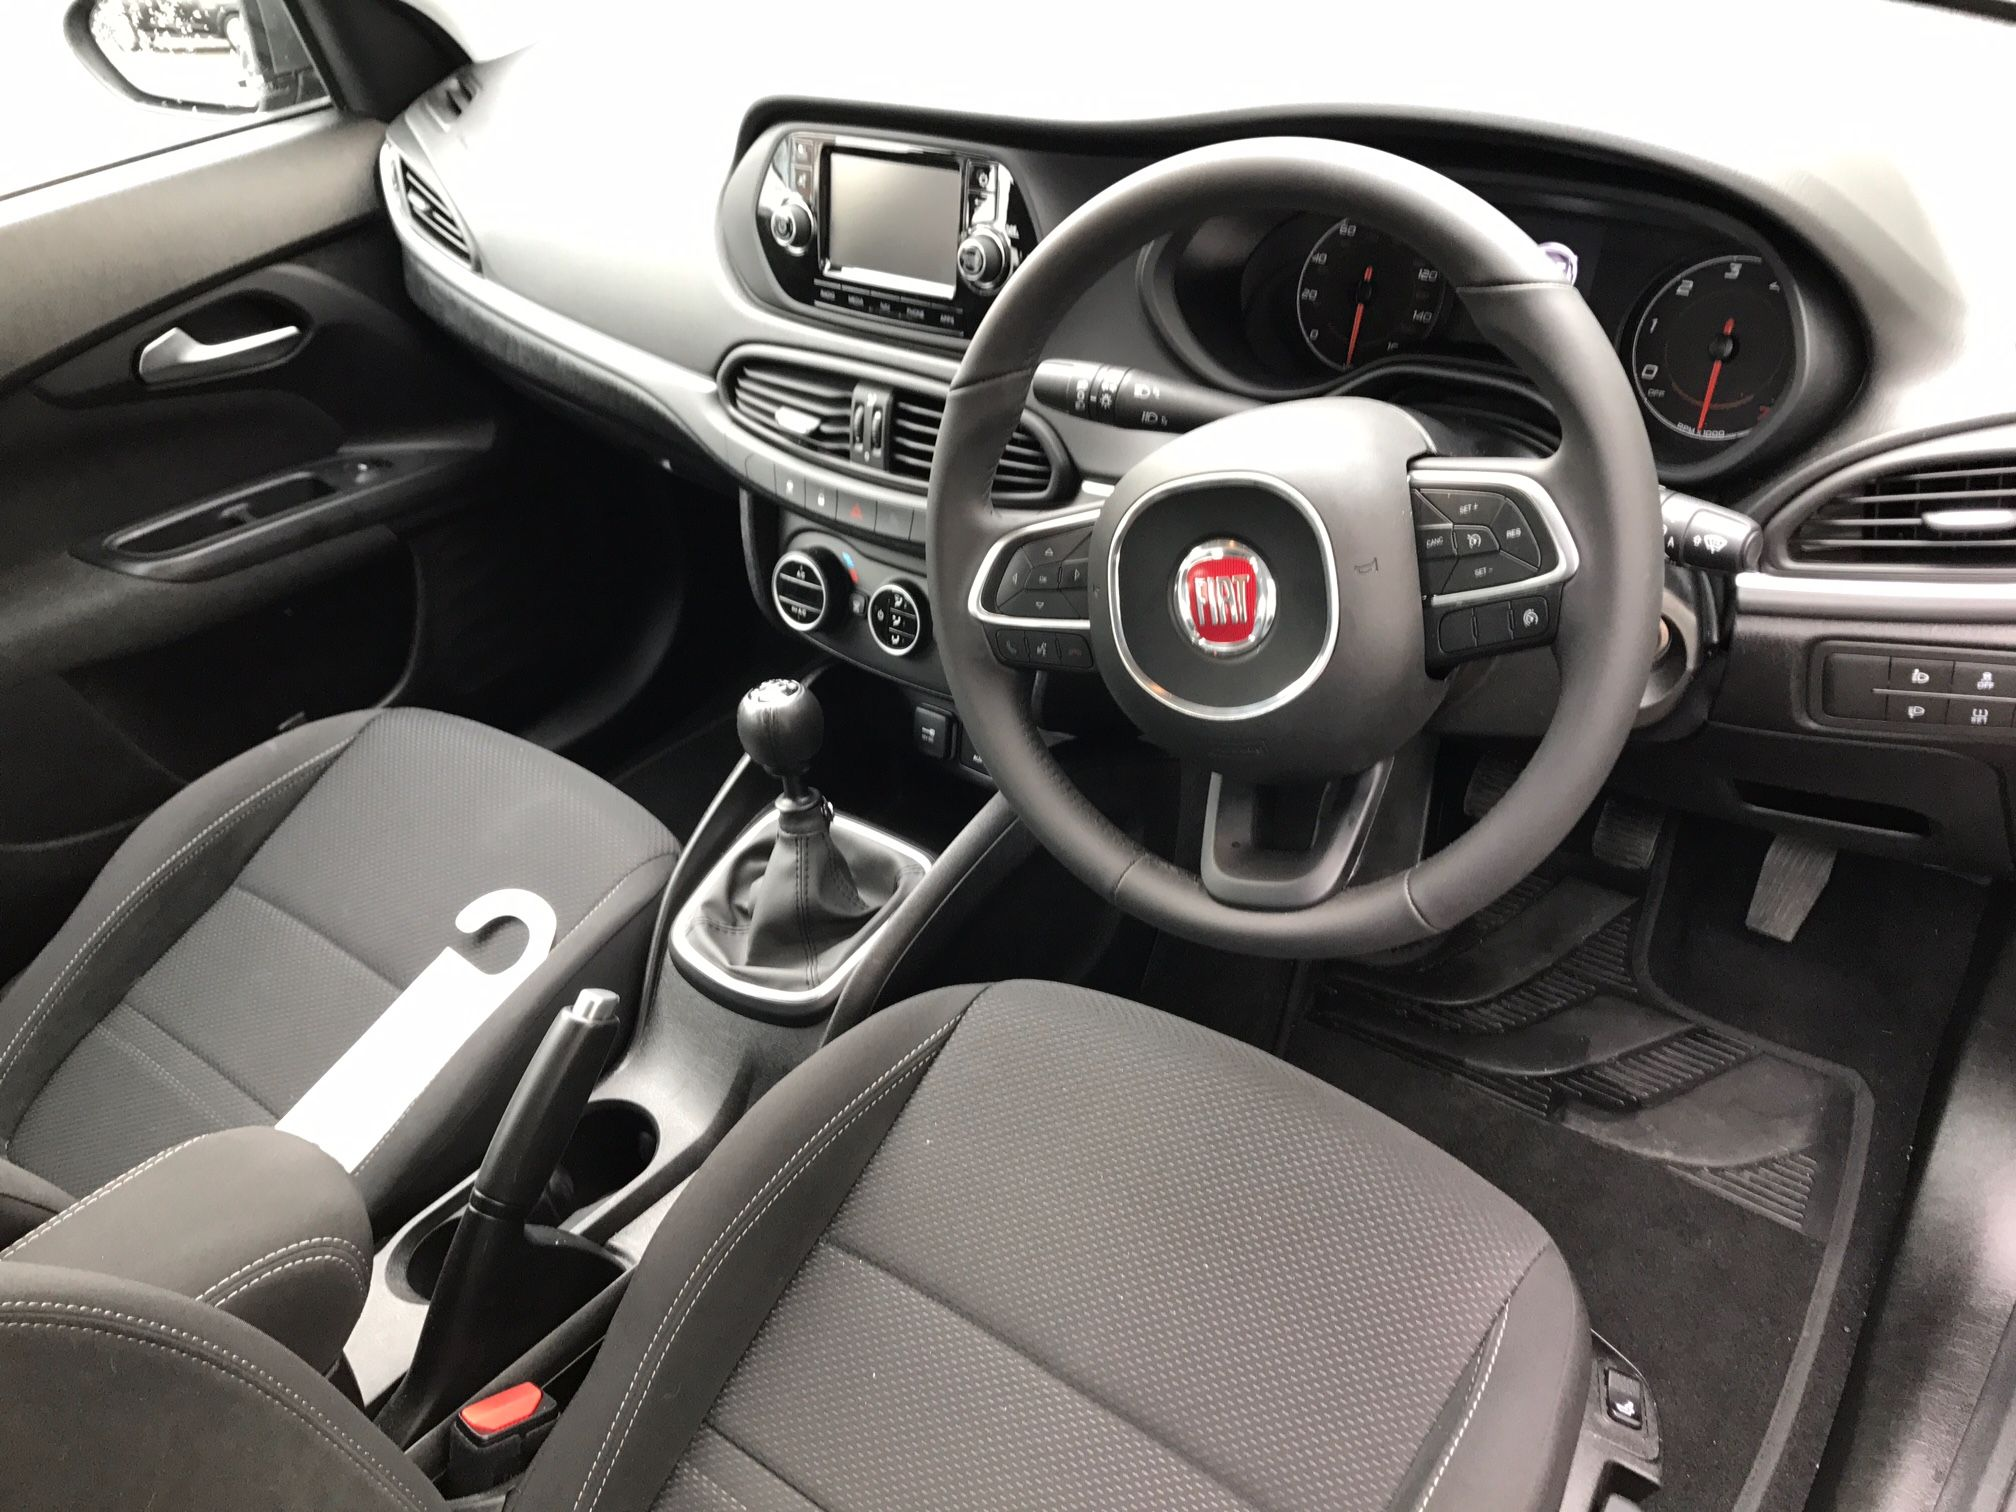 new hello say official to revealed facelift look pictures of the pics leasing car s first fiat news